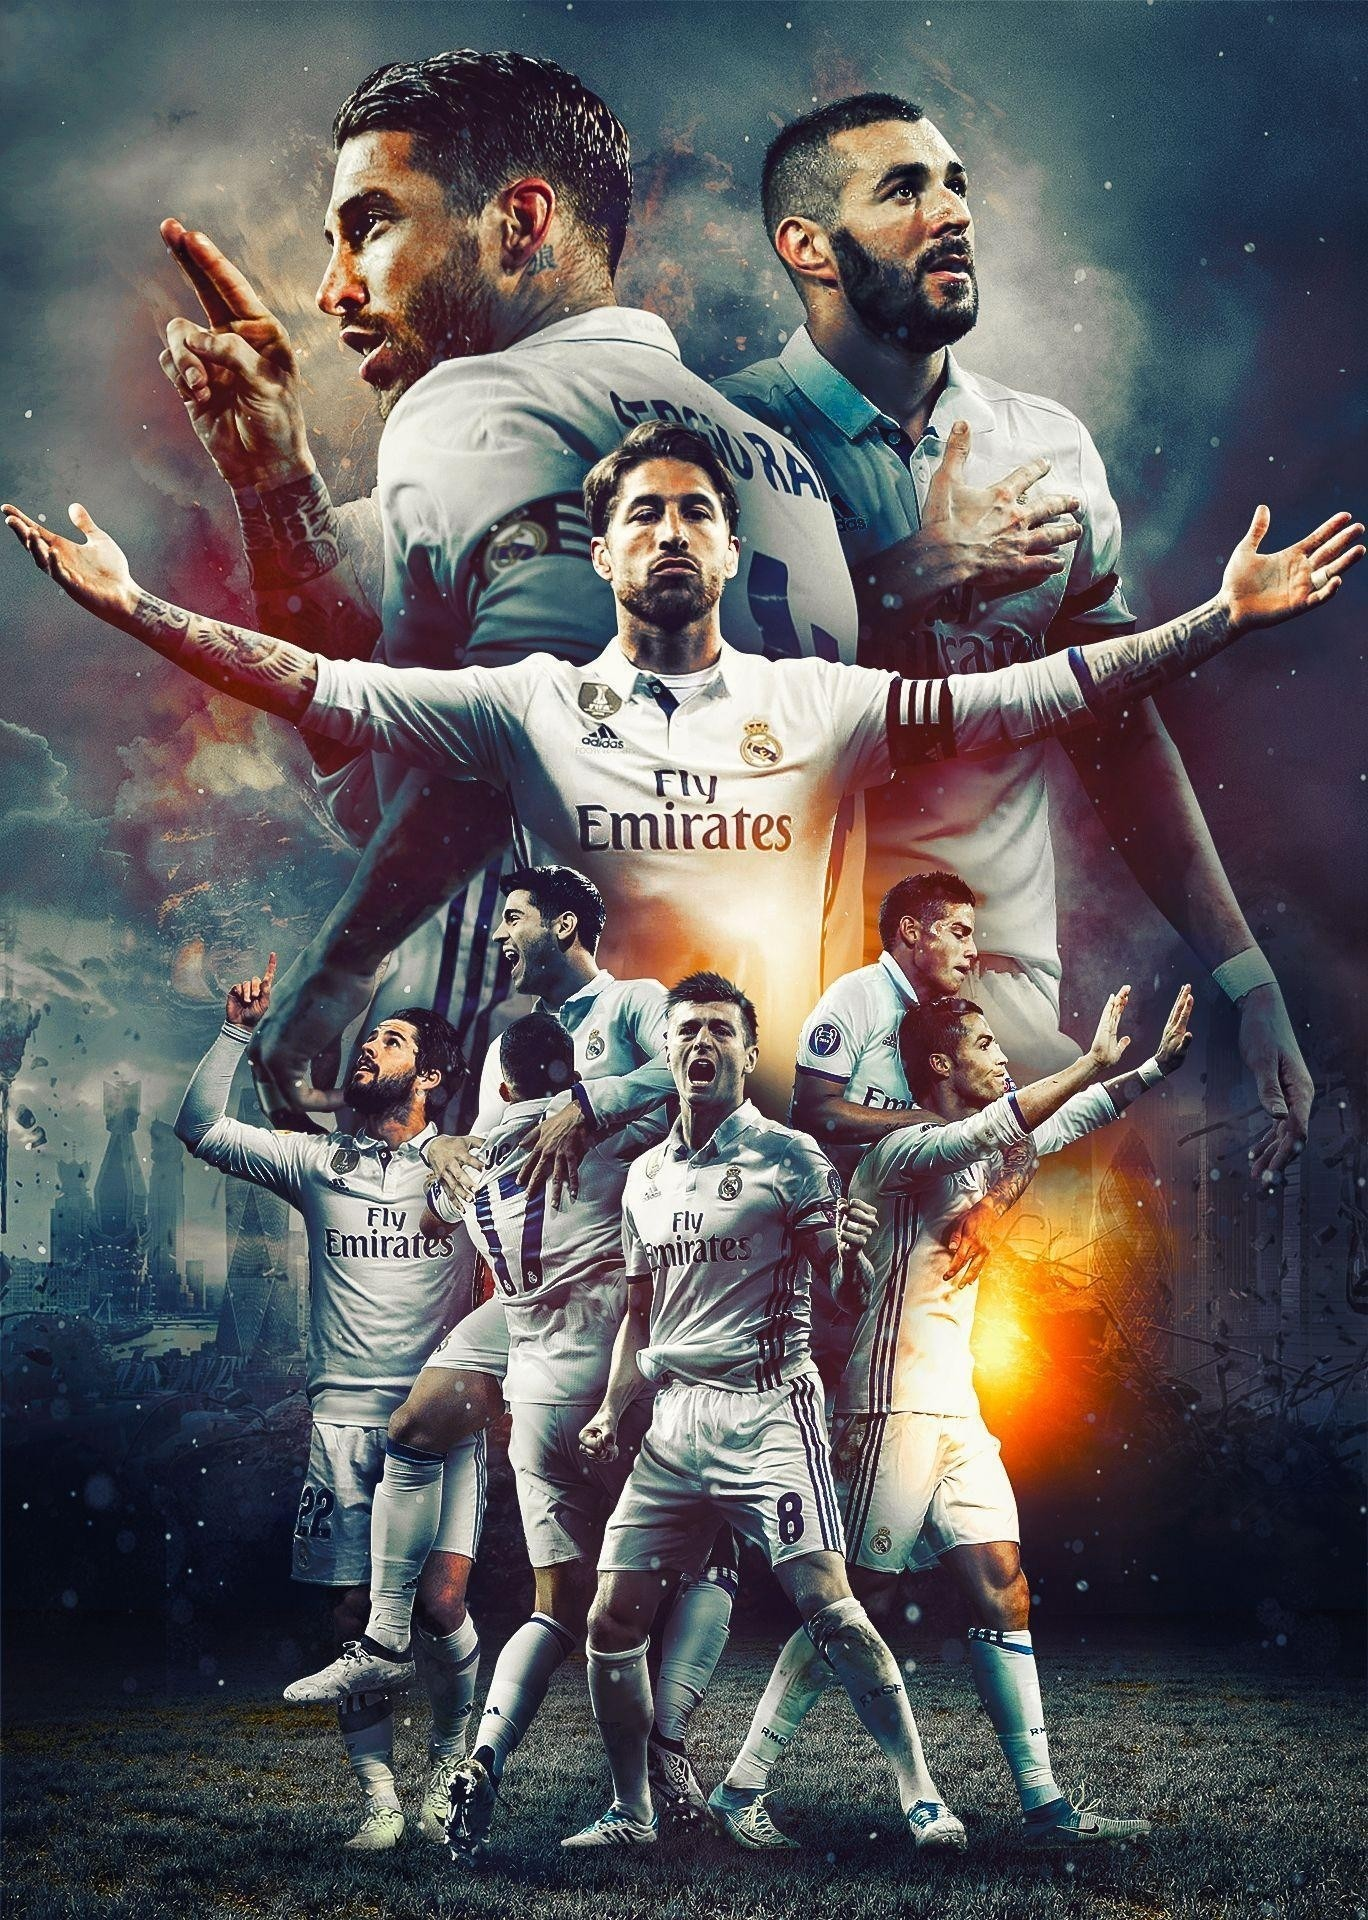 Res: 1368x1920, Title : real madrid 2017 wallpapers – wallpaper cave. Dimension : 1368 x  1920. File Type : JPG/JPEG